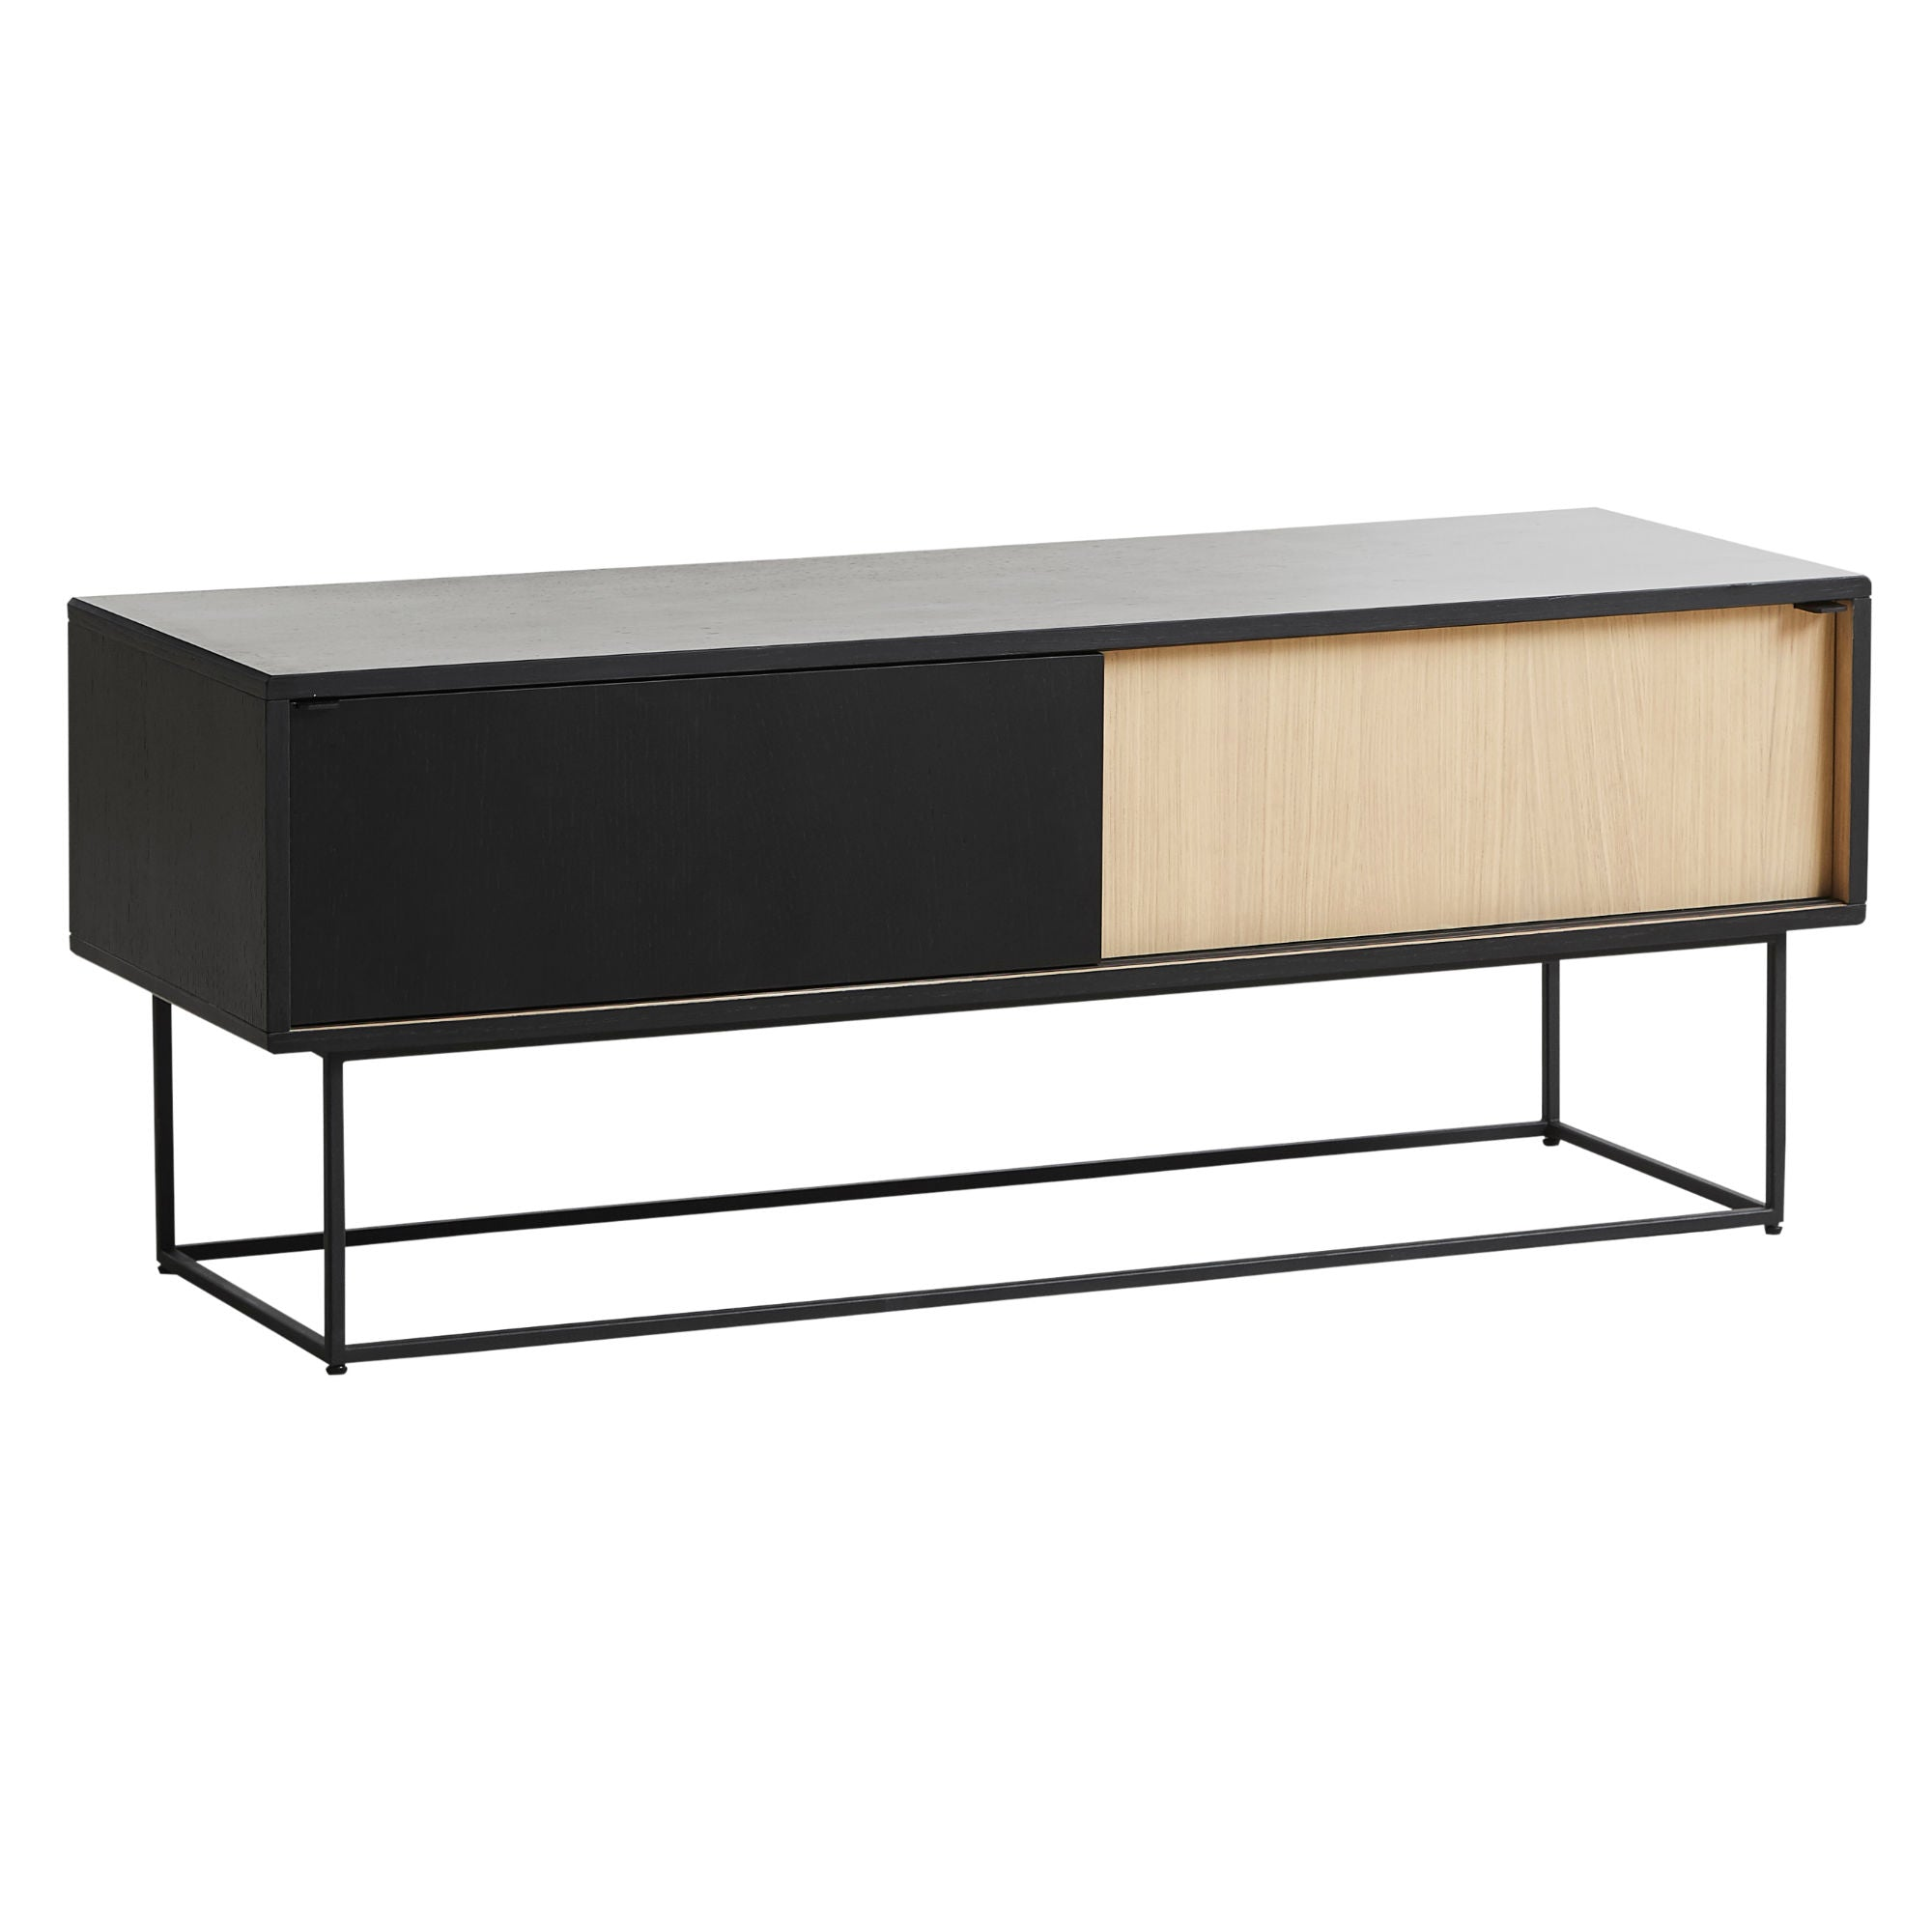 Woud Virka Low Sideboard , Black Painted-Oak